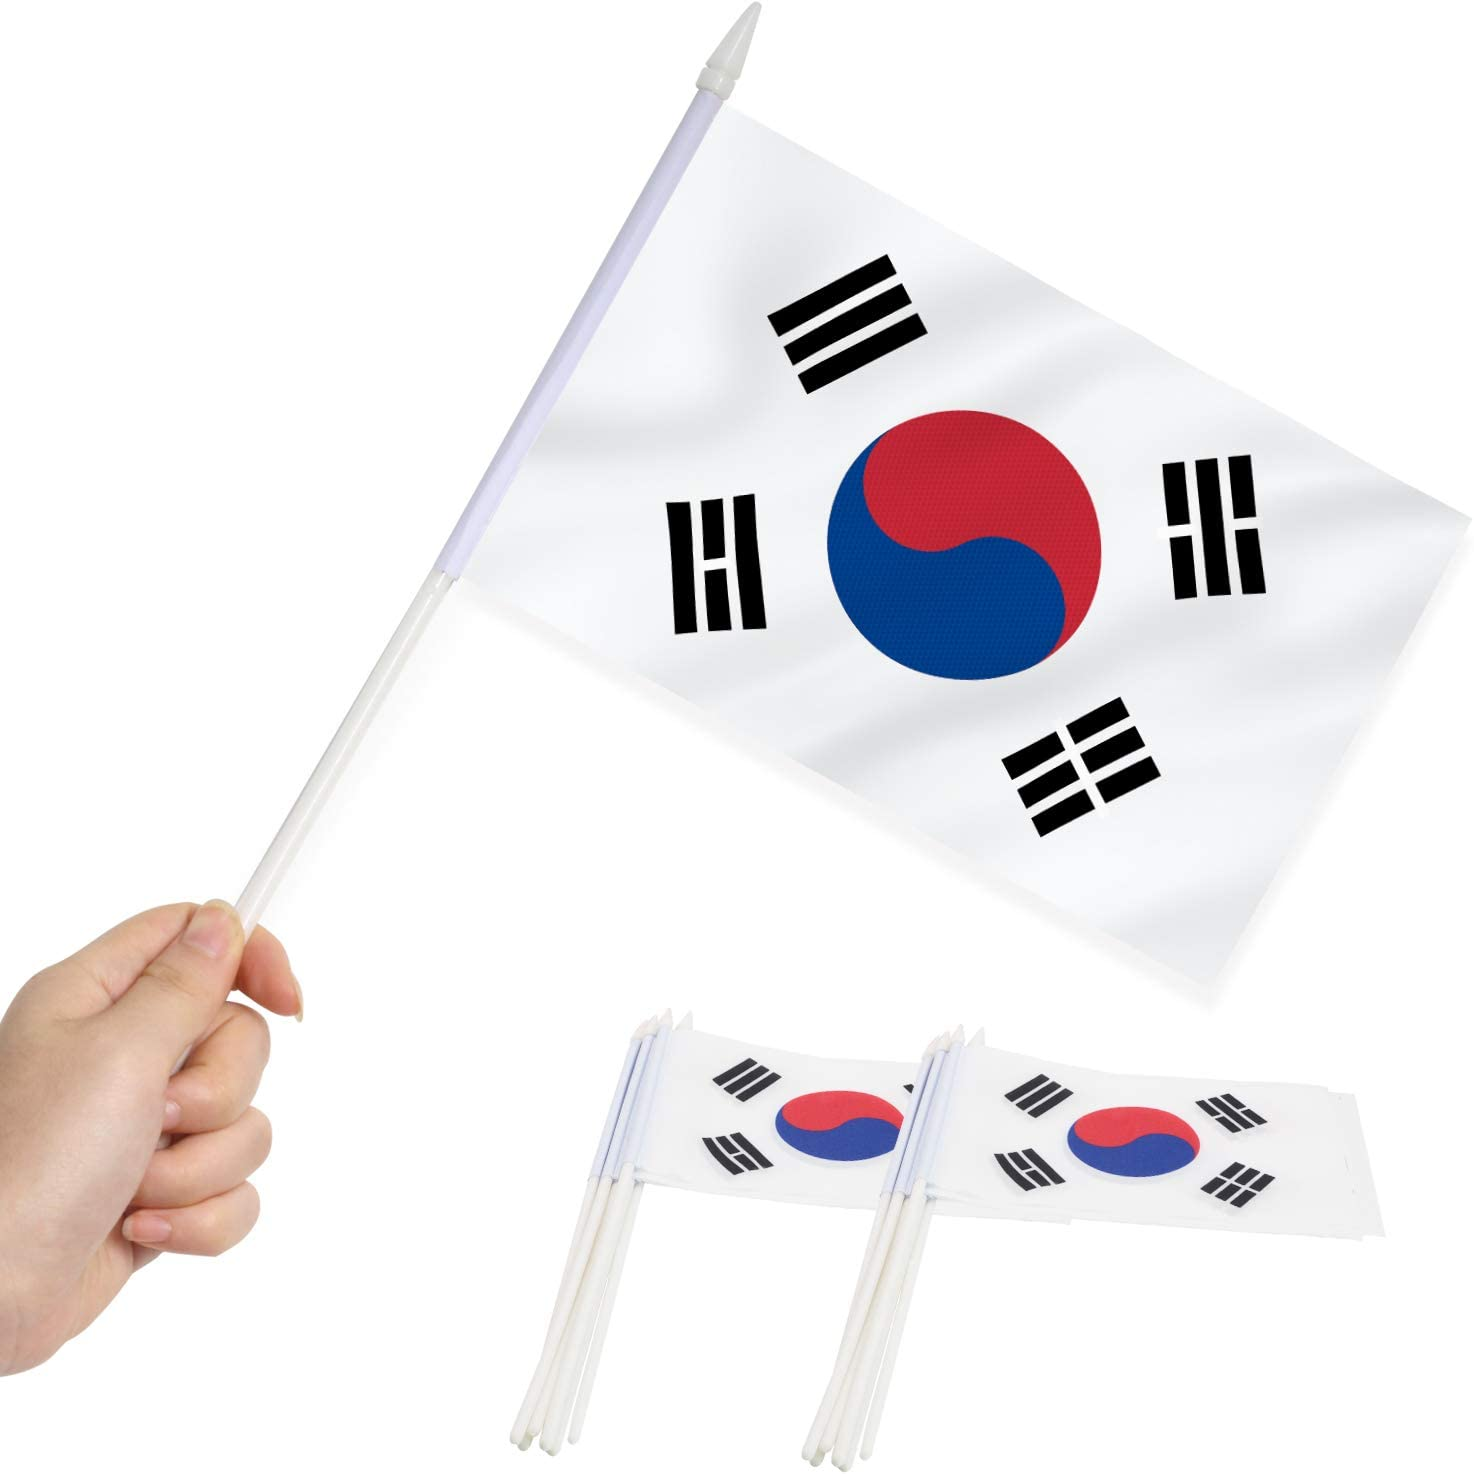 Anley Korea Mini Flag 12 Pack - Hand Held Small Miniature Korean Flags on Stick - Fade Resistant & Vivid Colors - 5x8 Inch with Solid Pole & Spear Top